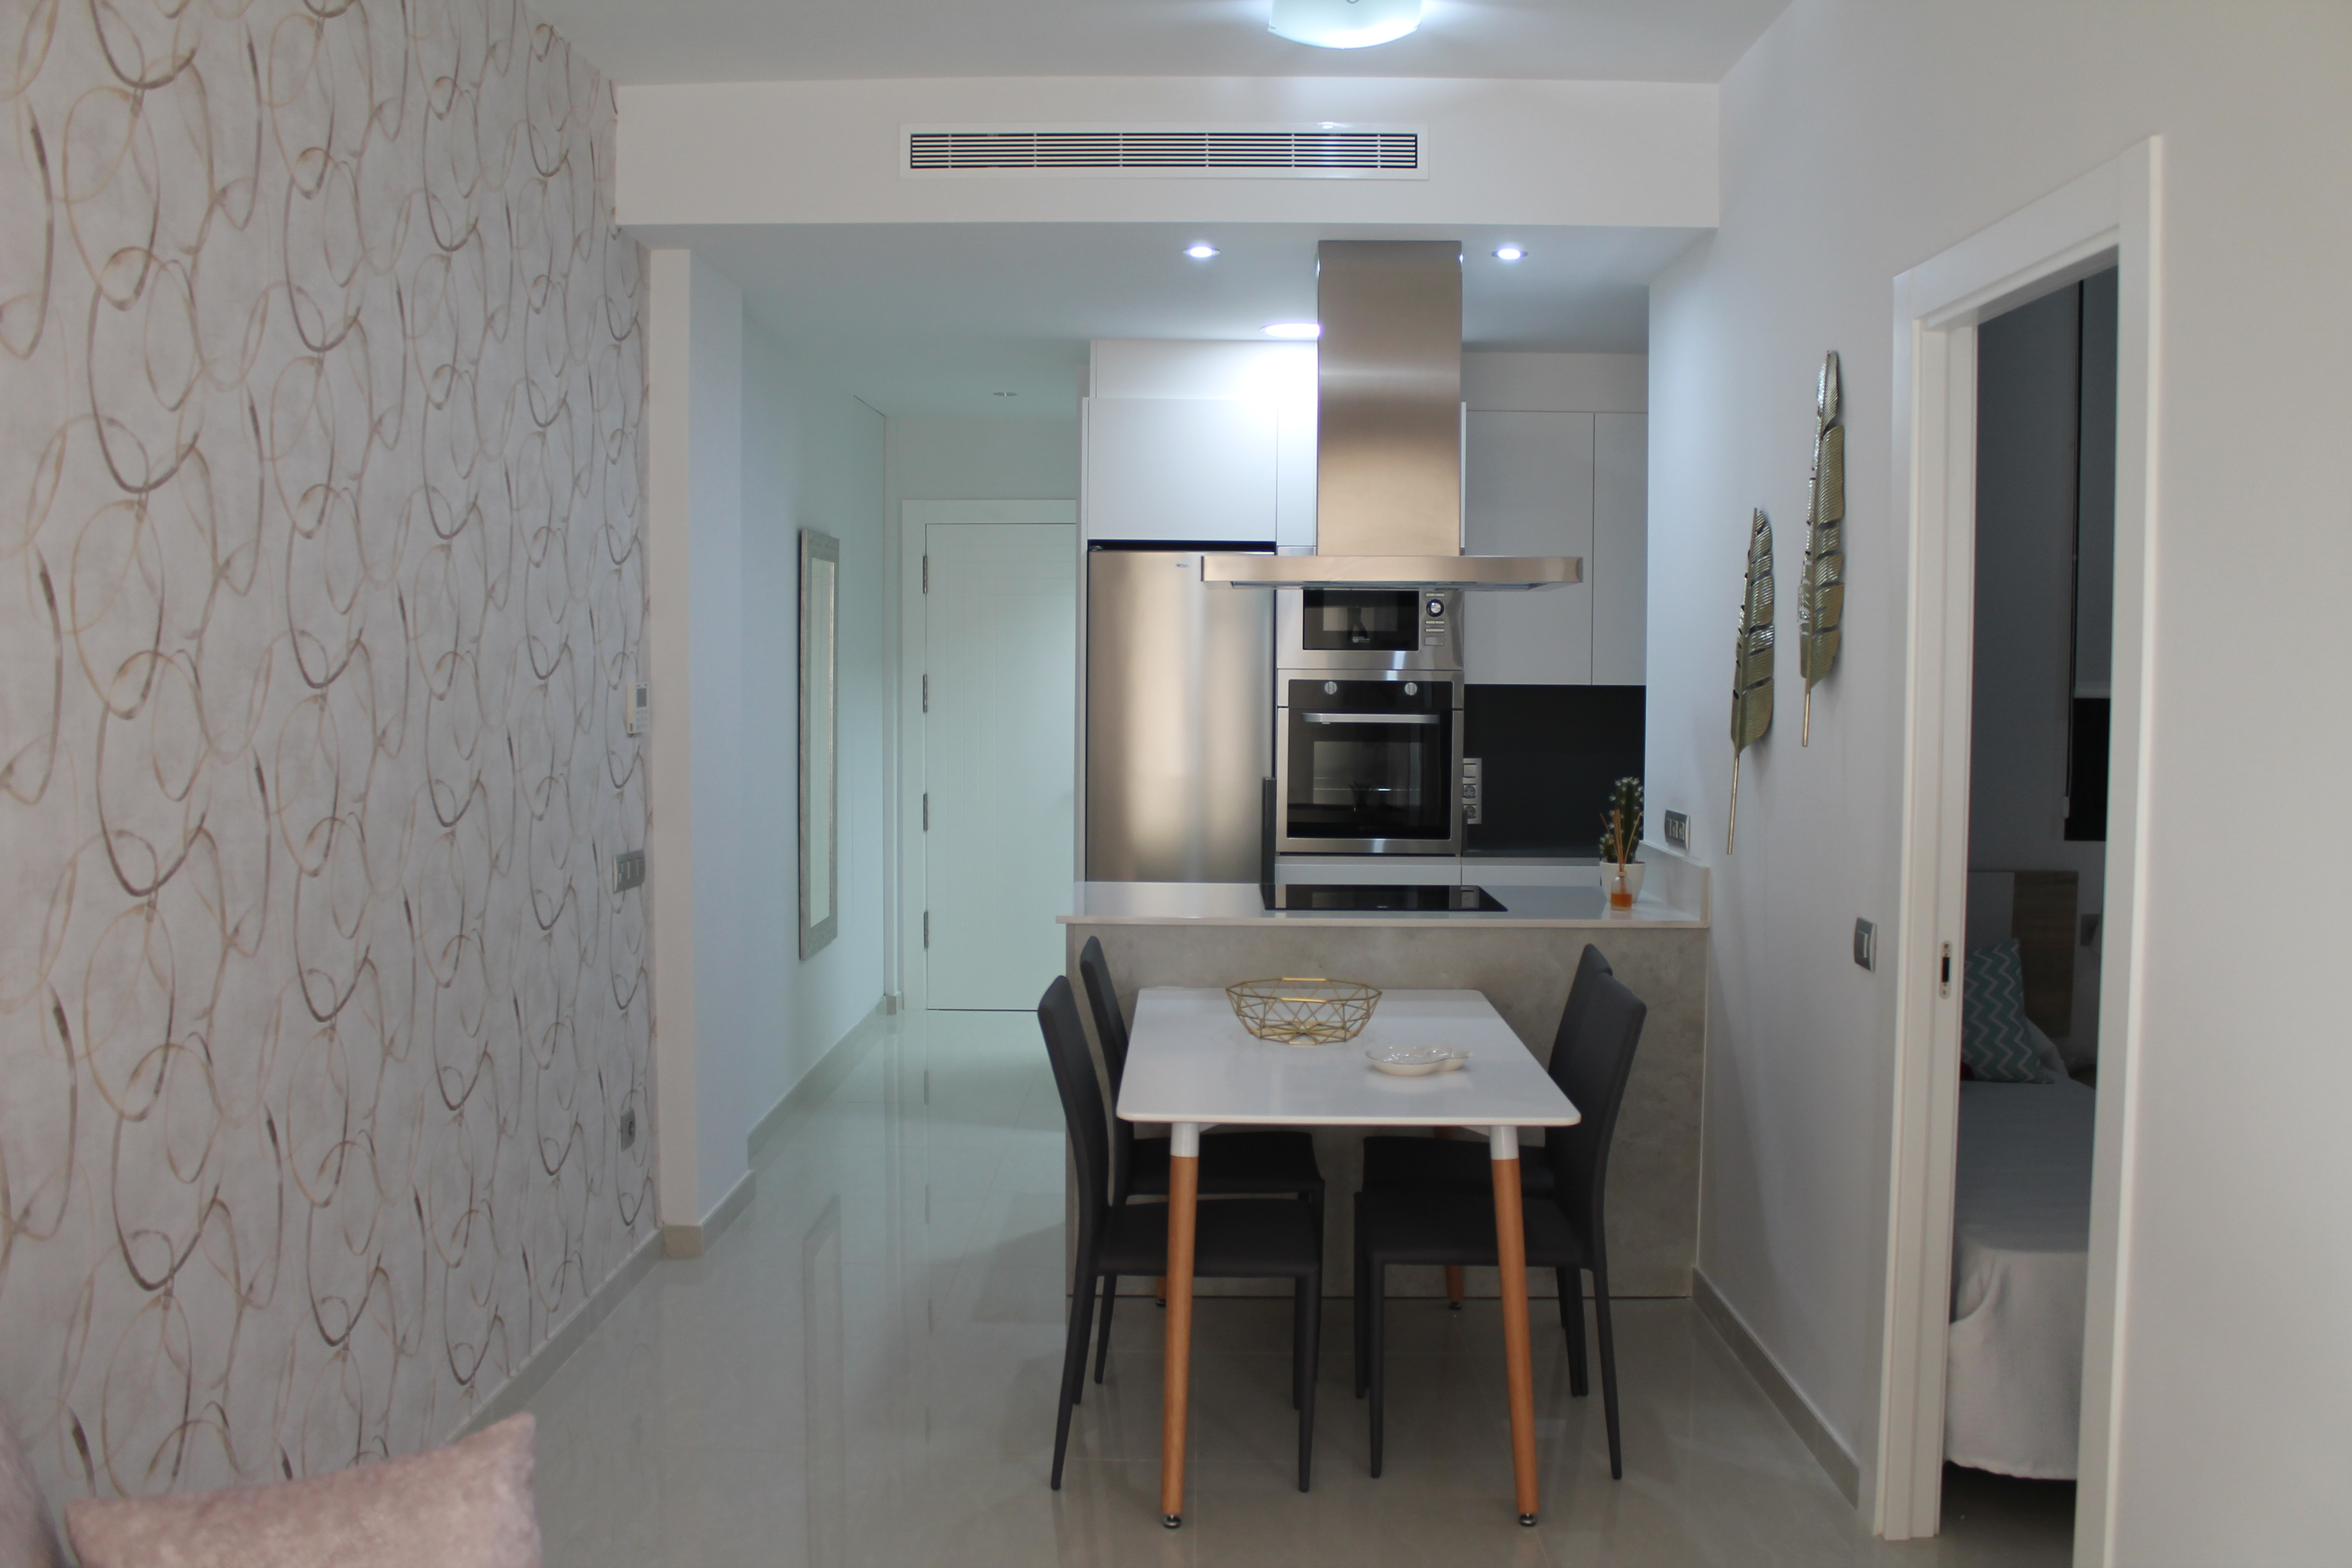 1 bedroom apartment For Sale in Torrevieja - photograph 29